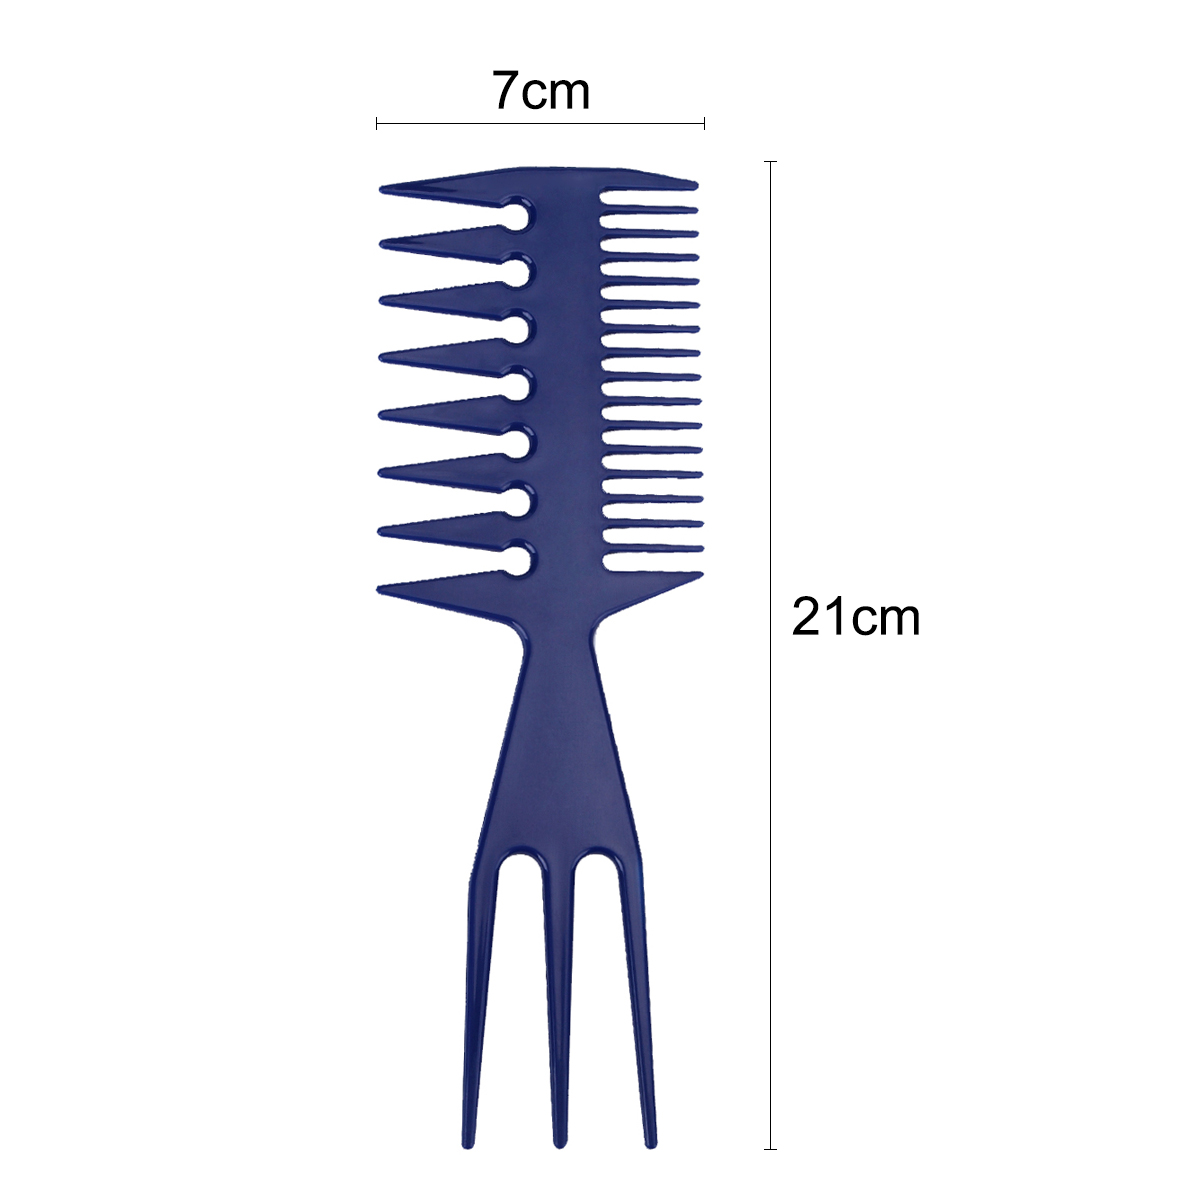 Hair Care & Styling Combs Professional Fish Bone Shape Comb Brushes Magic Unique Salon Hair Dyeing Sectioning Combs Women Hair Dyeing Styling Comb Tools